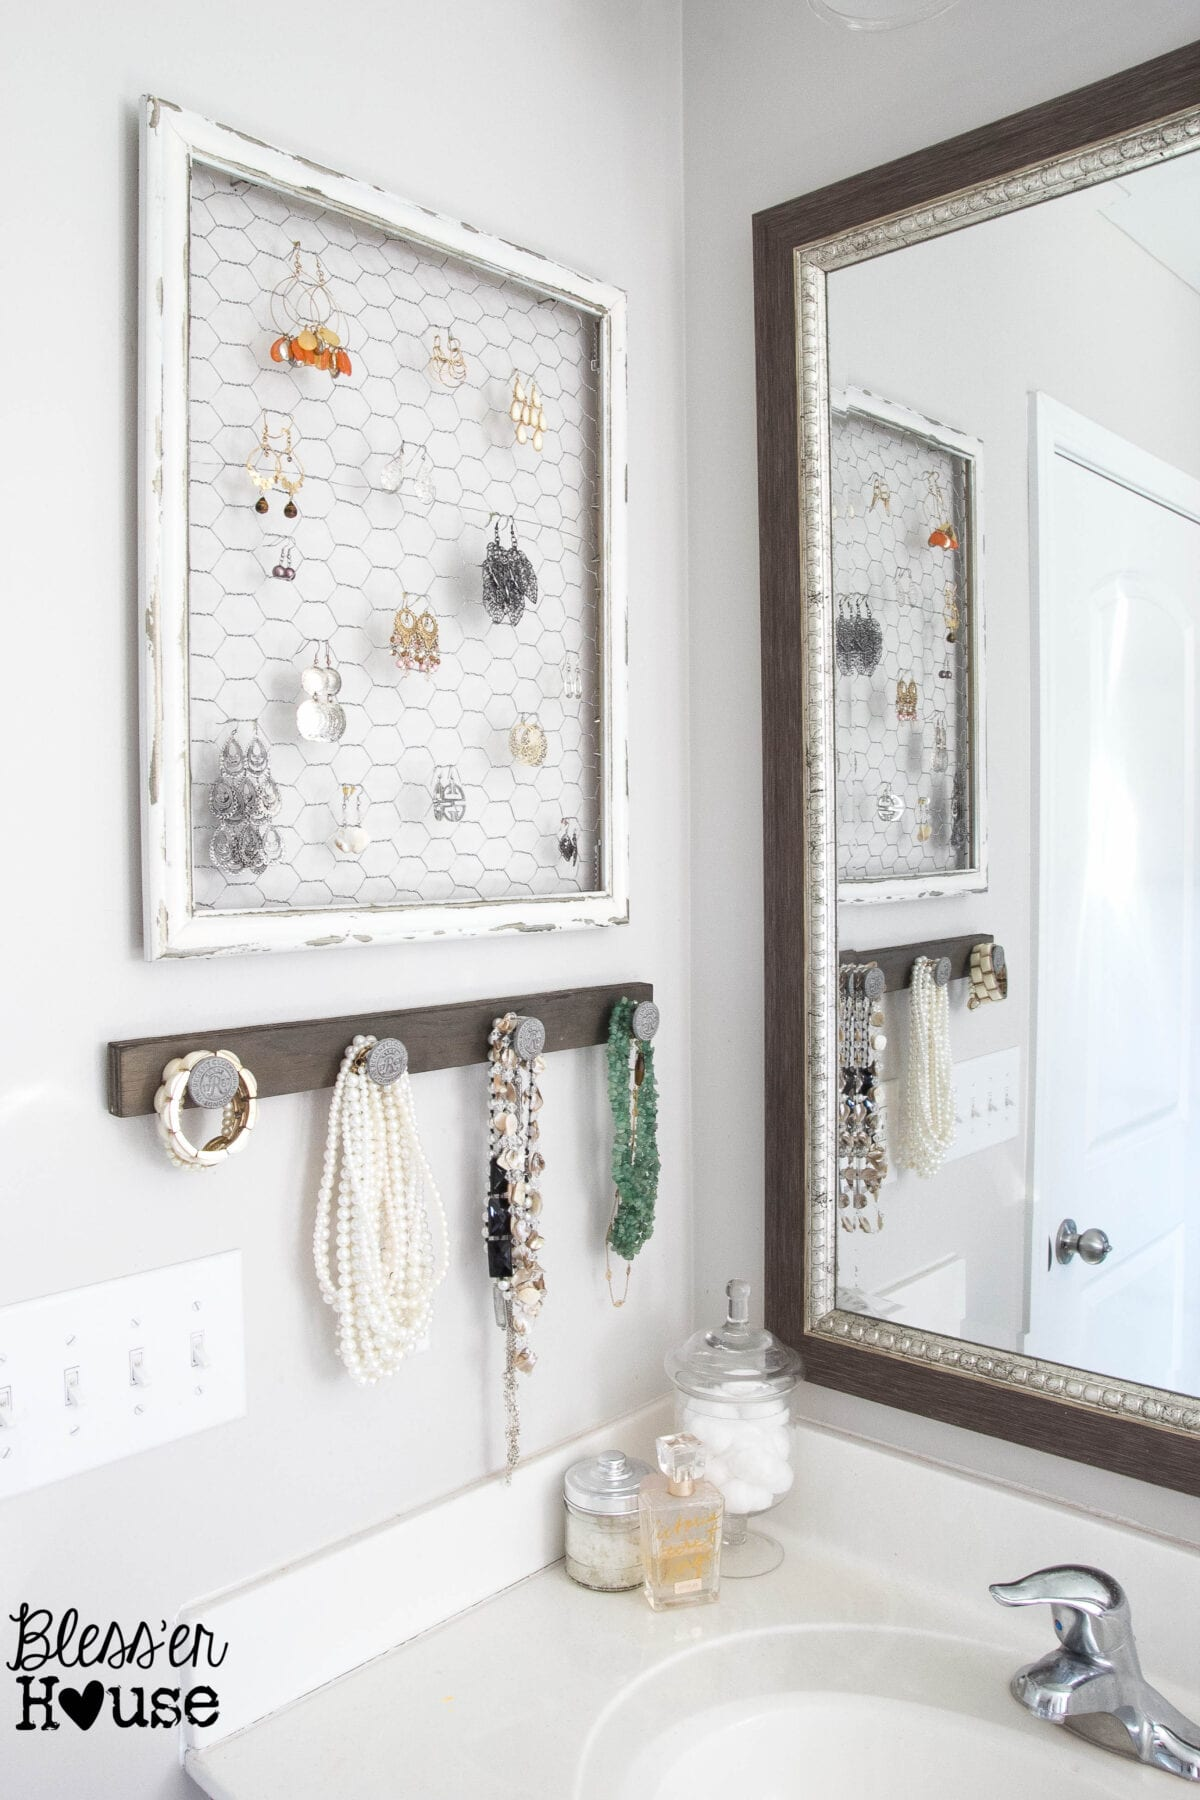 Diy Rustic Industrial Jewelry Organizer Bless Er House